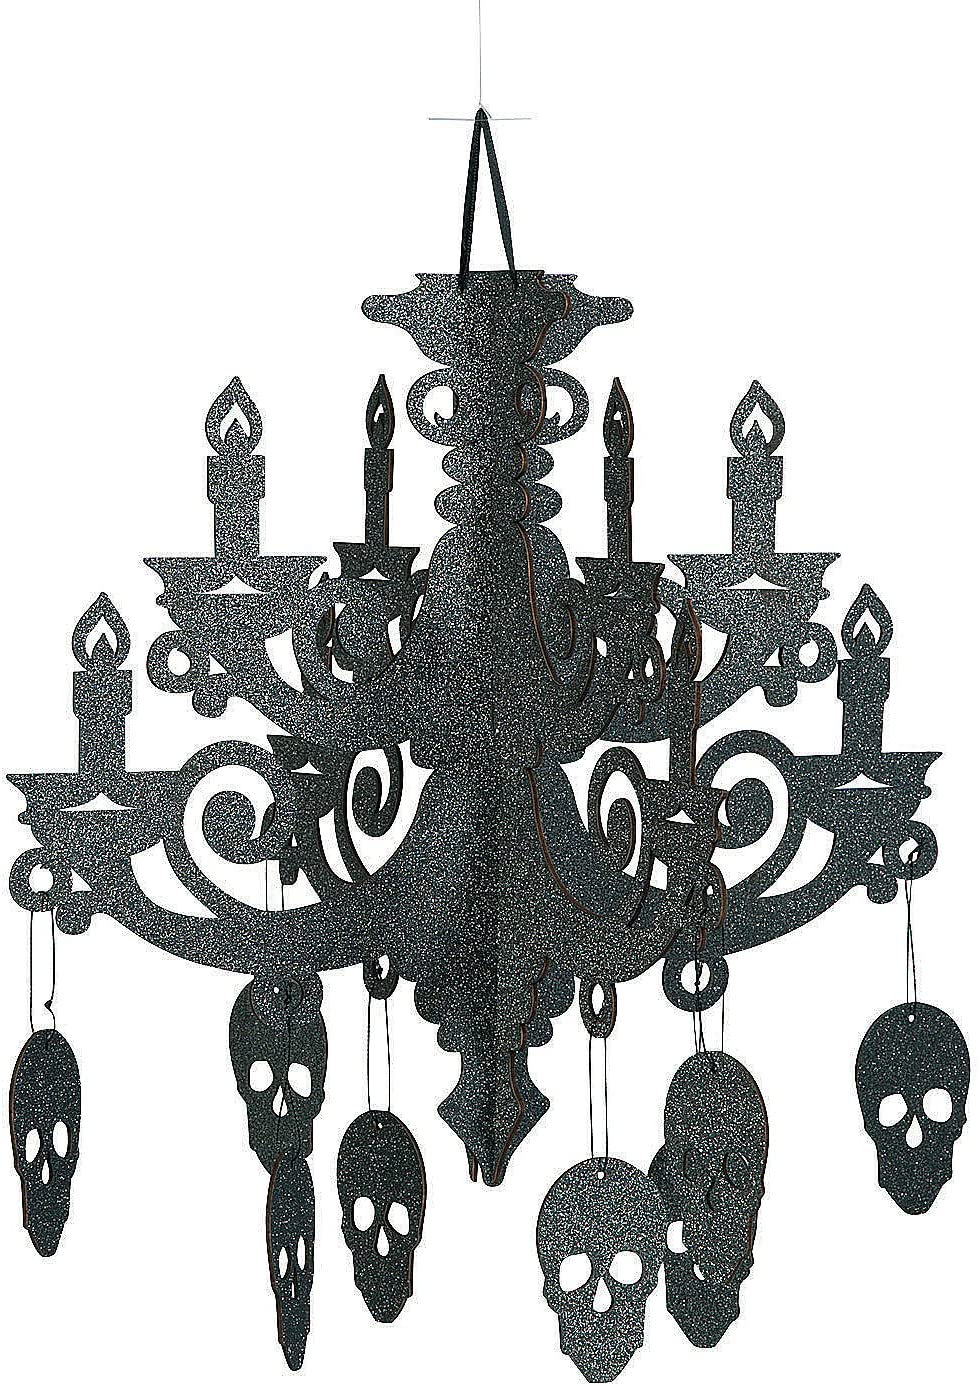 Fun Express - Spooky Floral Chandelier for Halloween - Party Decor - Hanging Decor - Misc Hanging Decor - Halloween - 1 Piece